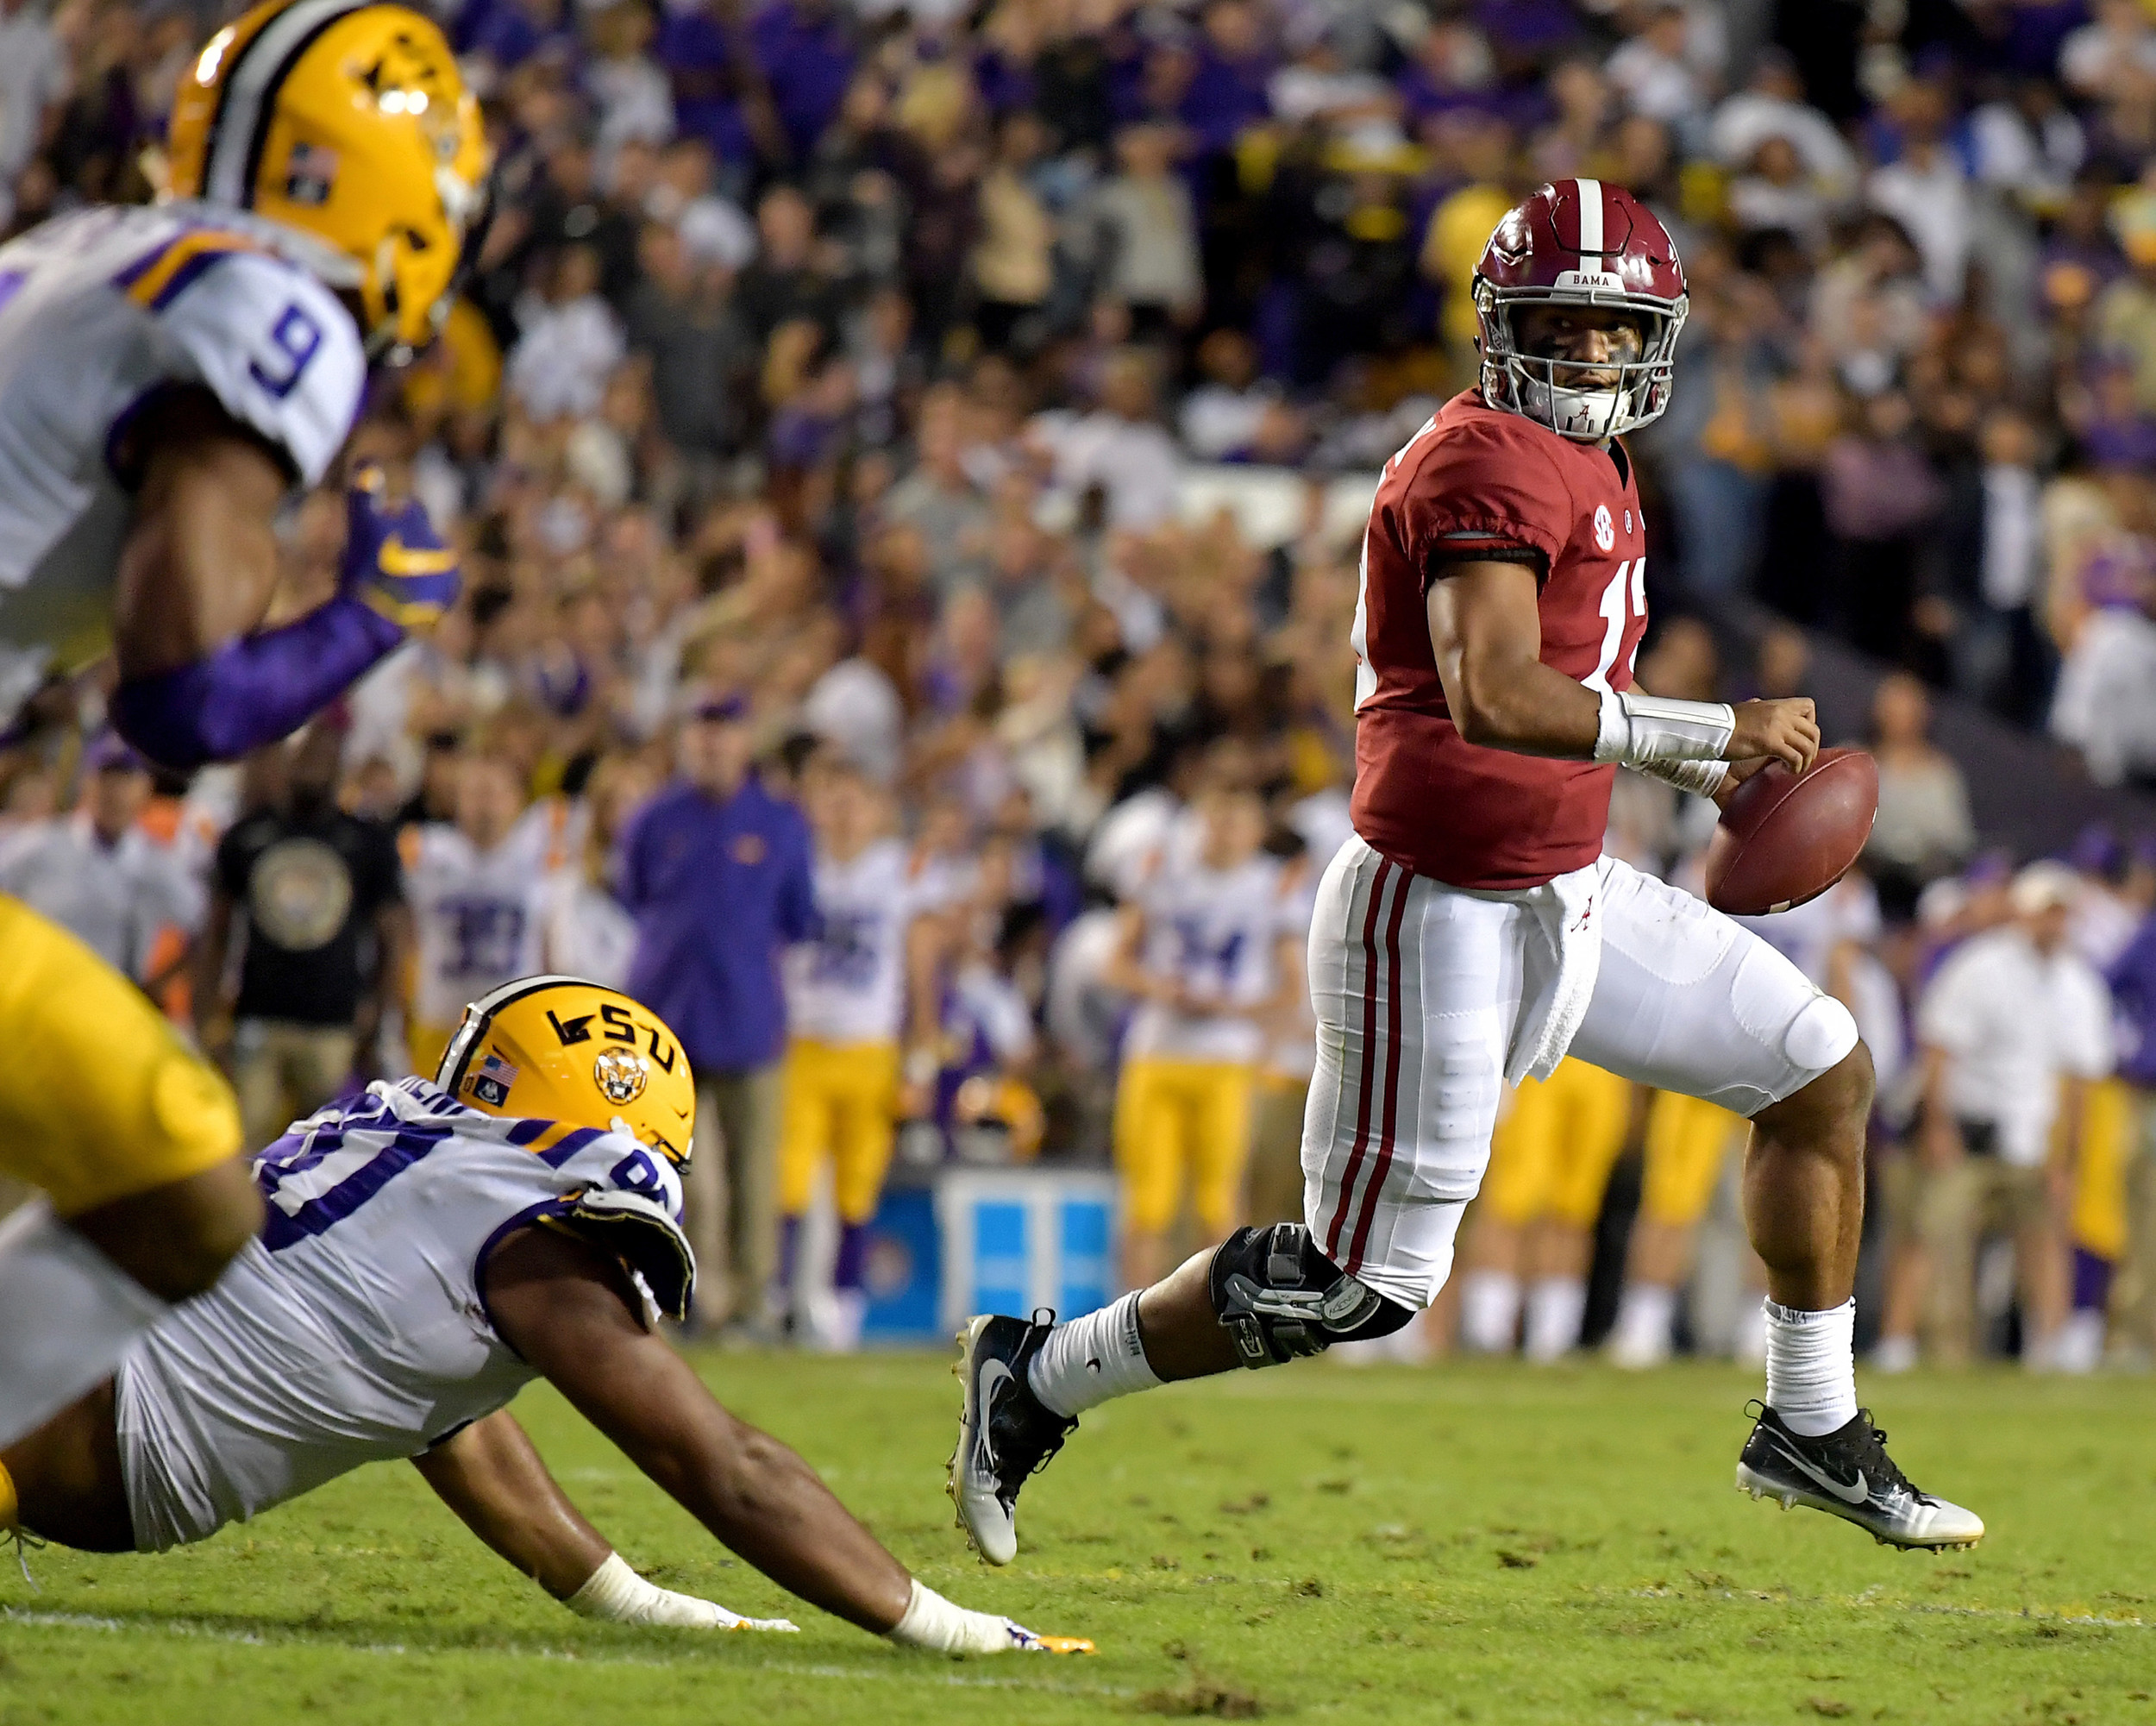 Alabama Crimson Tide quarterback Tua Tagovailoa (13) scrambles under pressure during the first half of an NCAA football game against the LSU Tigers Saturday, November 3, 2018, at Tiger Stadium in Baton Rouge, La. Alabama wins 29-0. (Photo by Lee Walls)